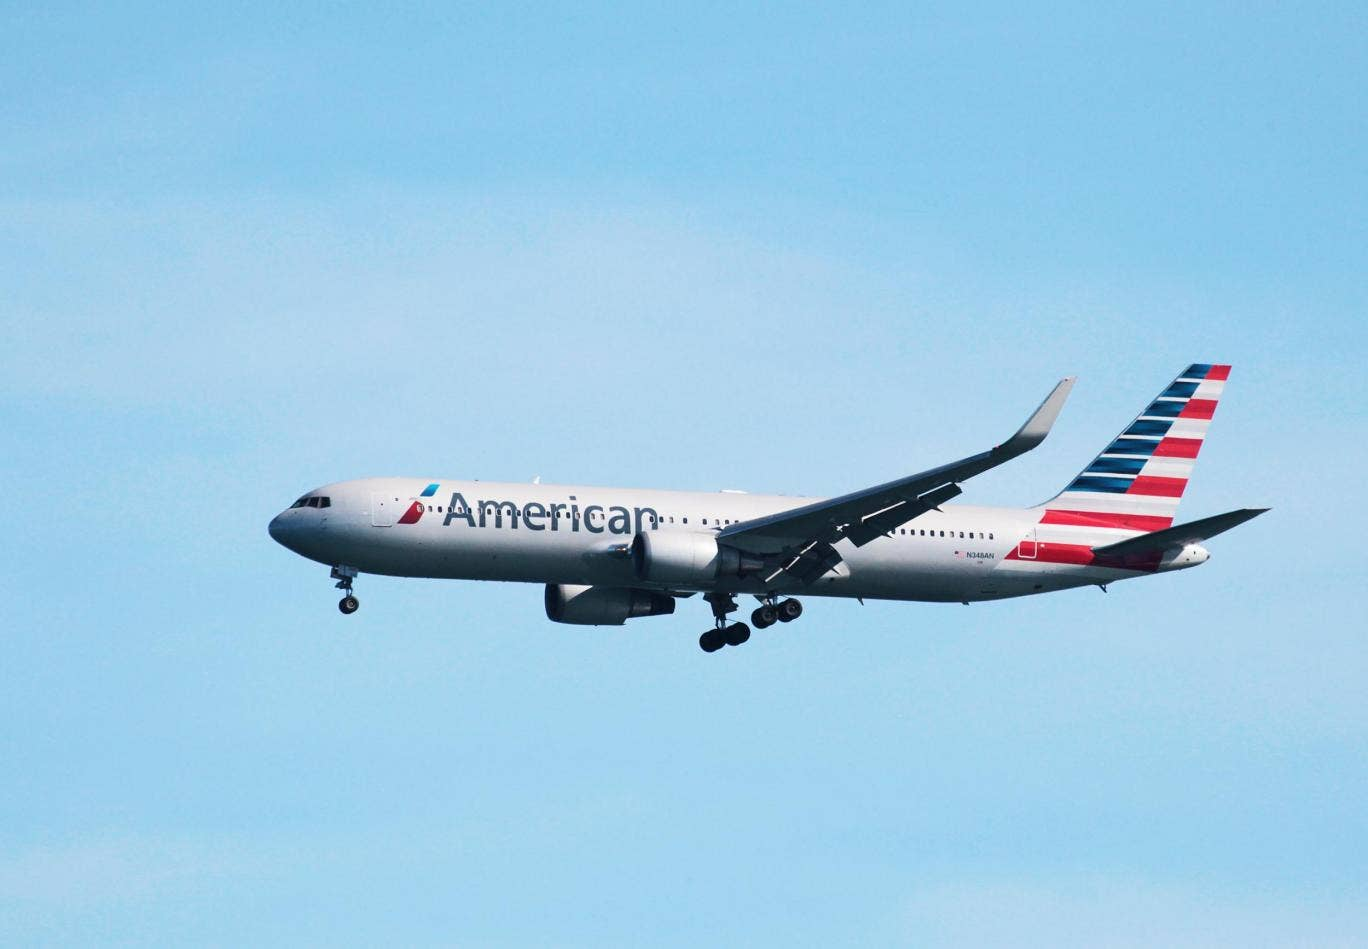 Mystery illness diverts American Airlines flight